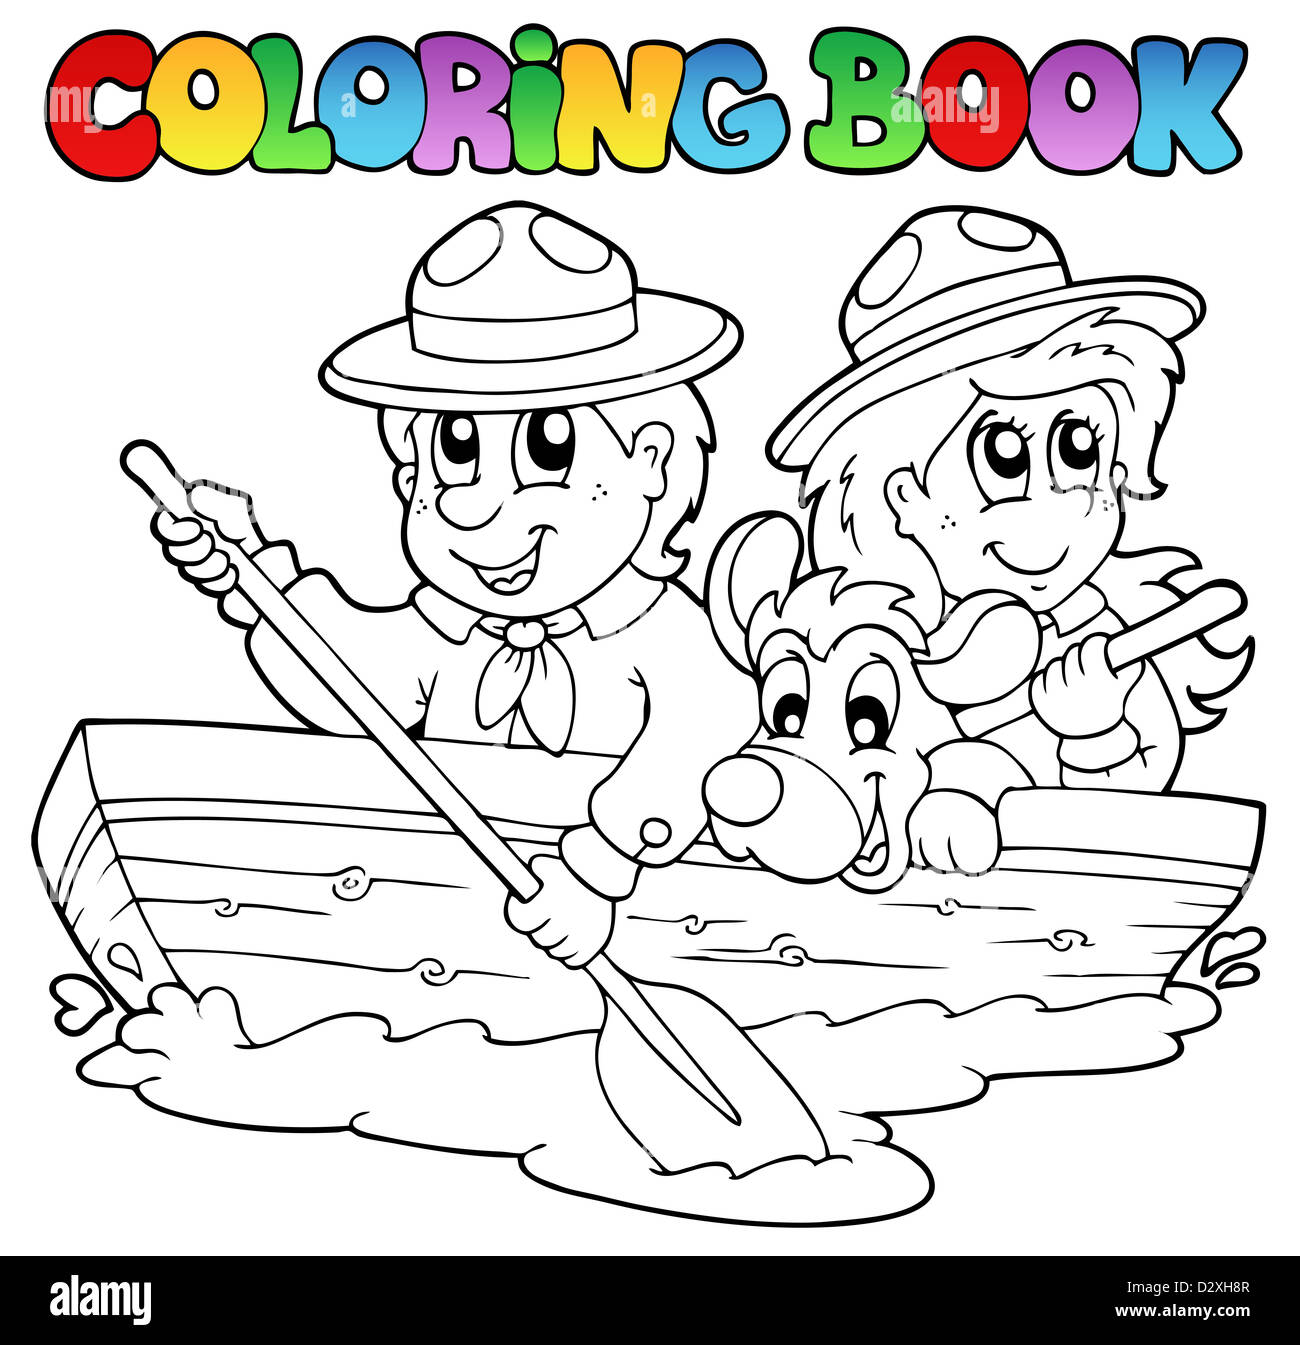 coloring book water scout boy Stock Photos & coloring book water ...